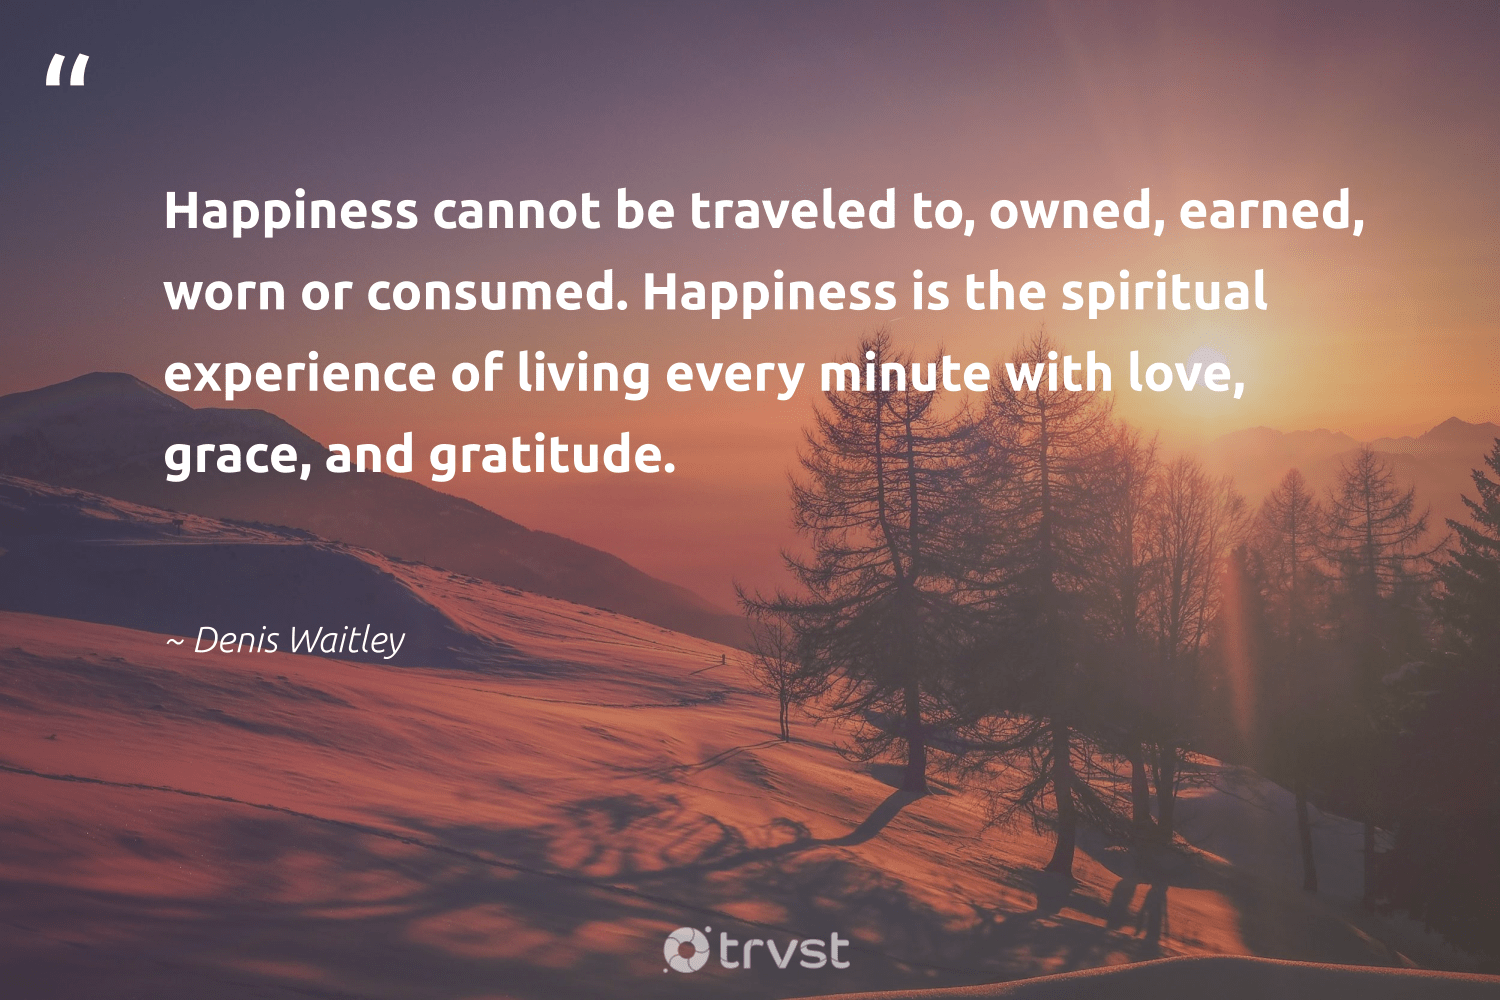 """""""Happiness cannot be traveled to, owned, earned, worn or consumed. Happiness is the spiritual experience of living every minute with love, grace, and gratitude.""""  - Denis Waitley #trvst #quotes #love #gratitude #happiness #spiritual #health #changetheworld #nevergiveup #dogood #togetherwecan #impact"""